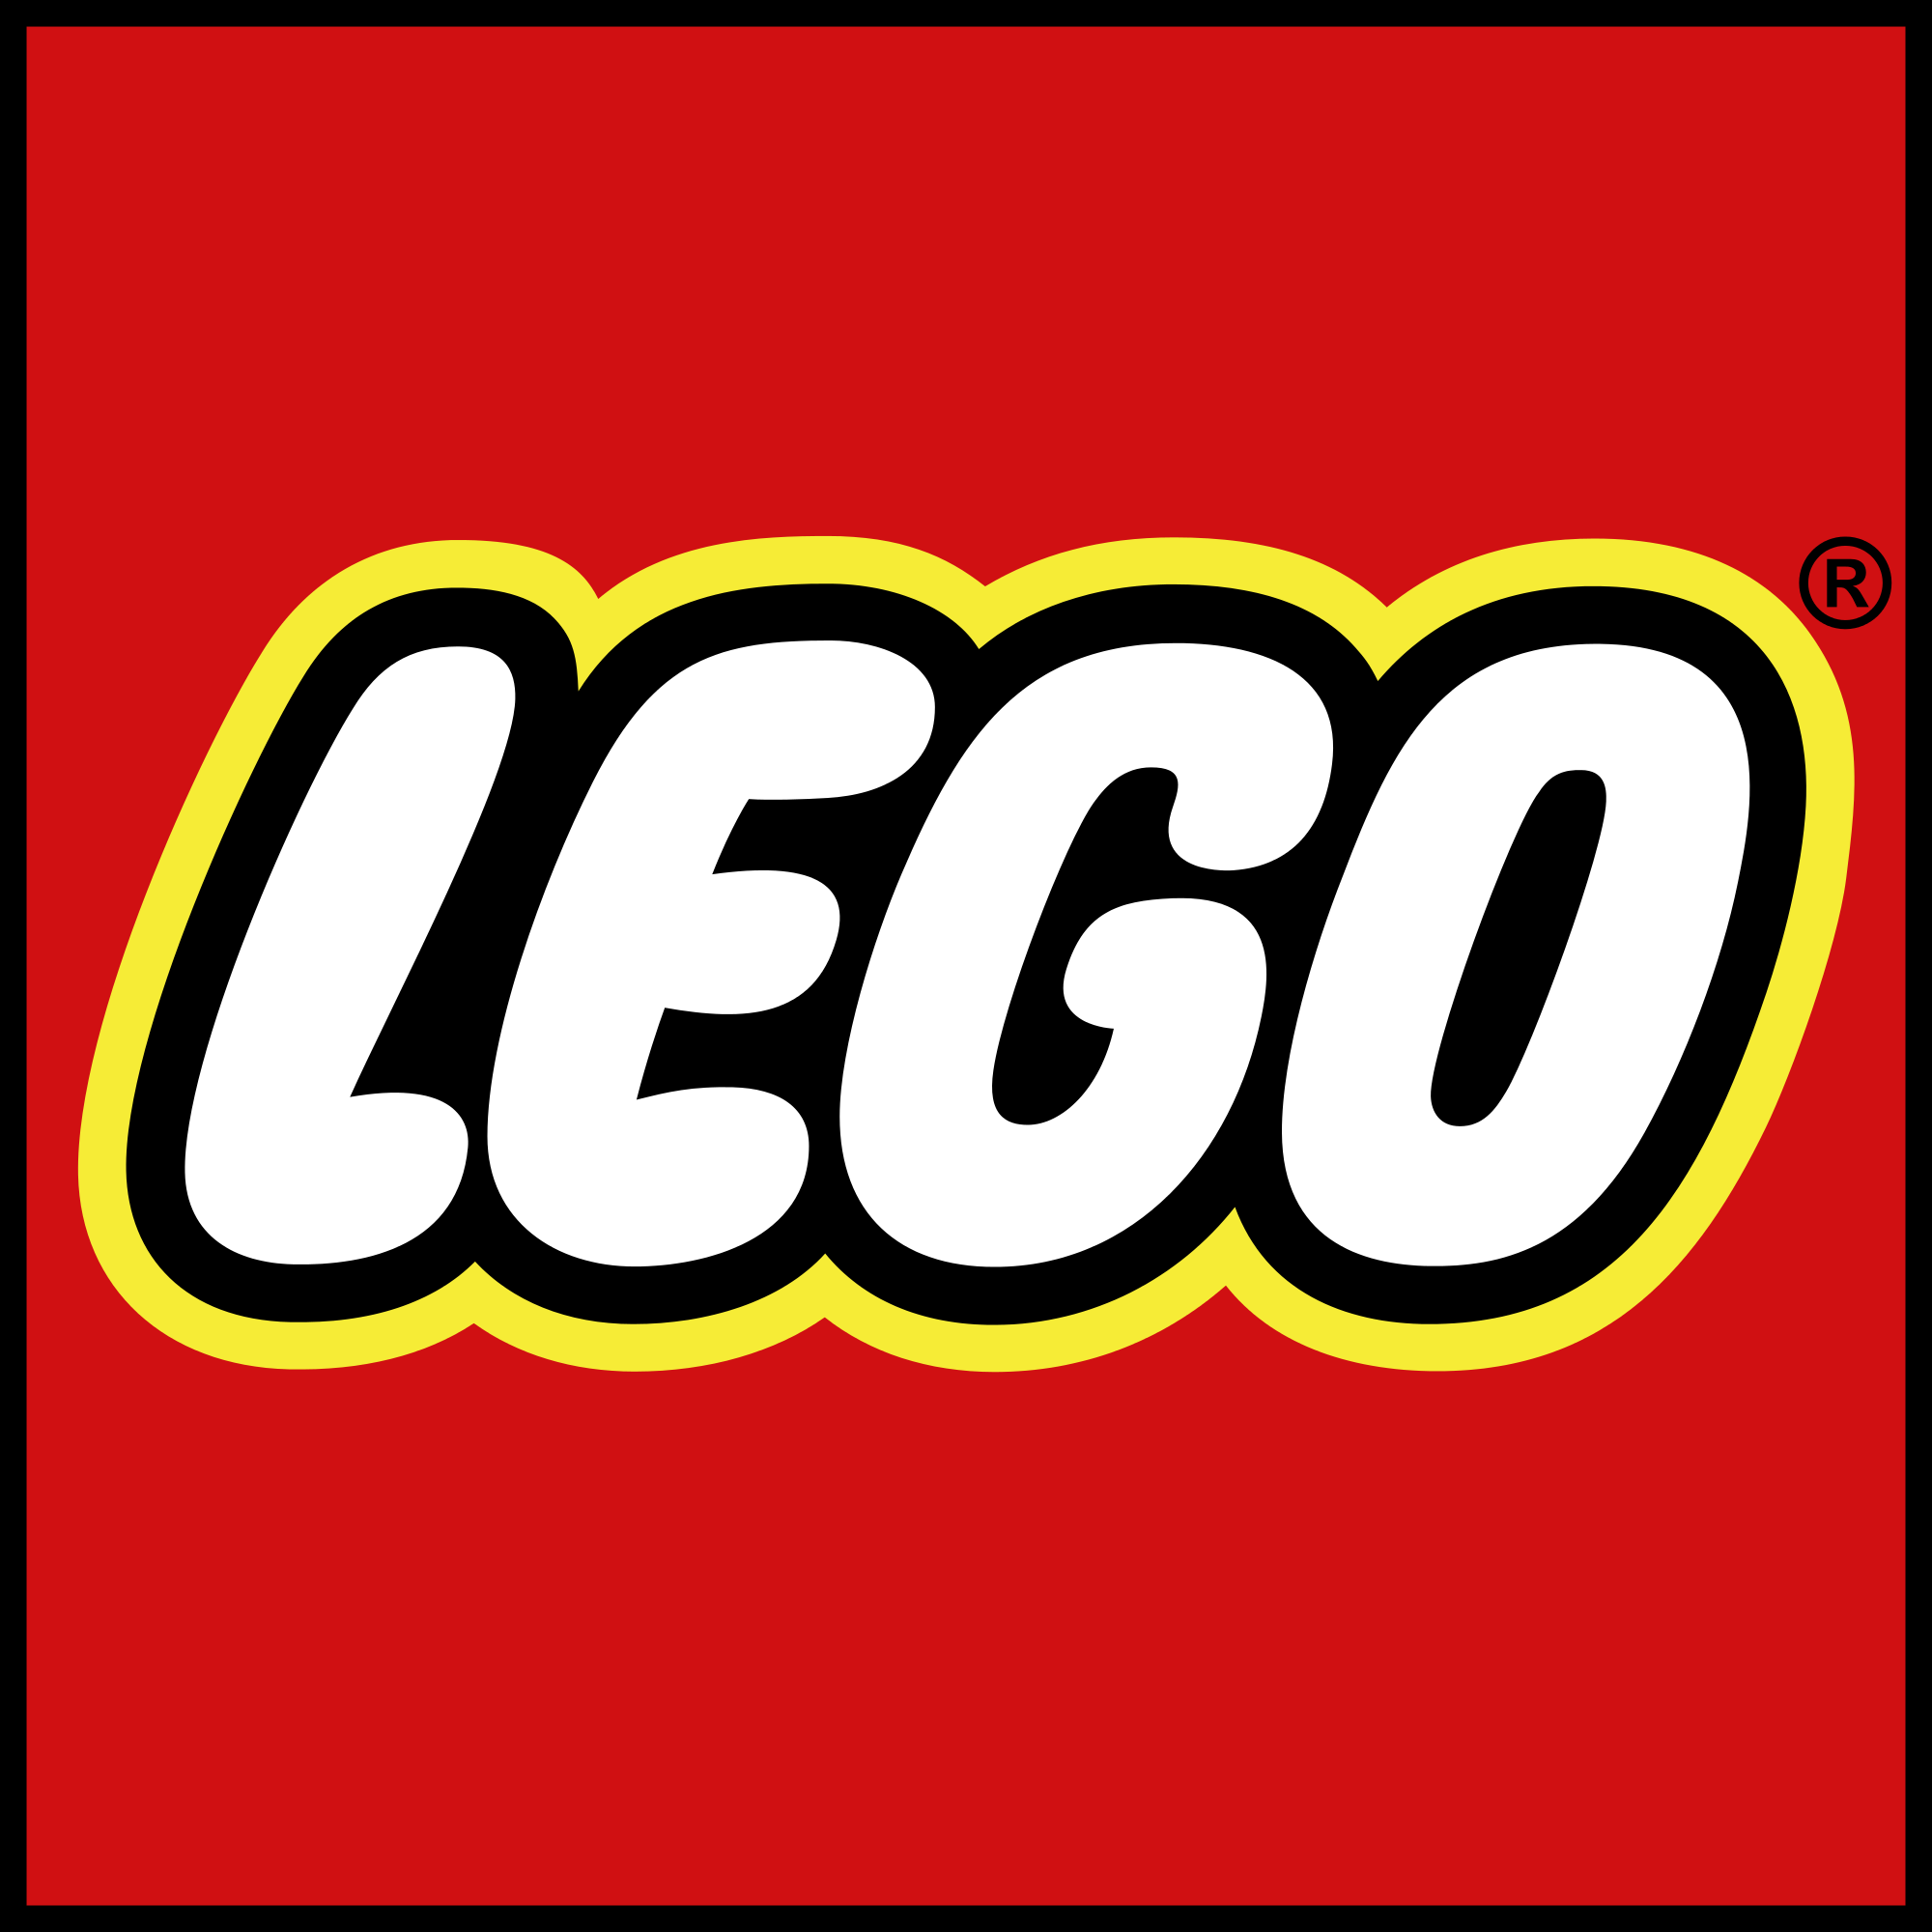 http://lounge.obviousmag.org/ideias_de_guerrilha/2016/07/01/lego_11.png